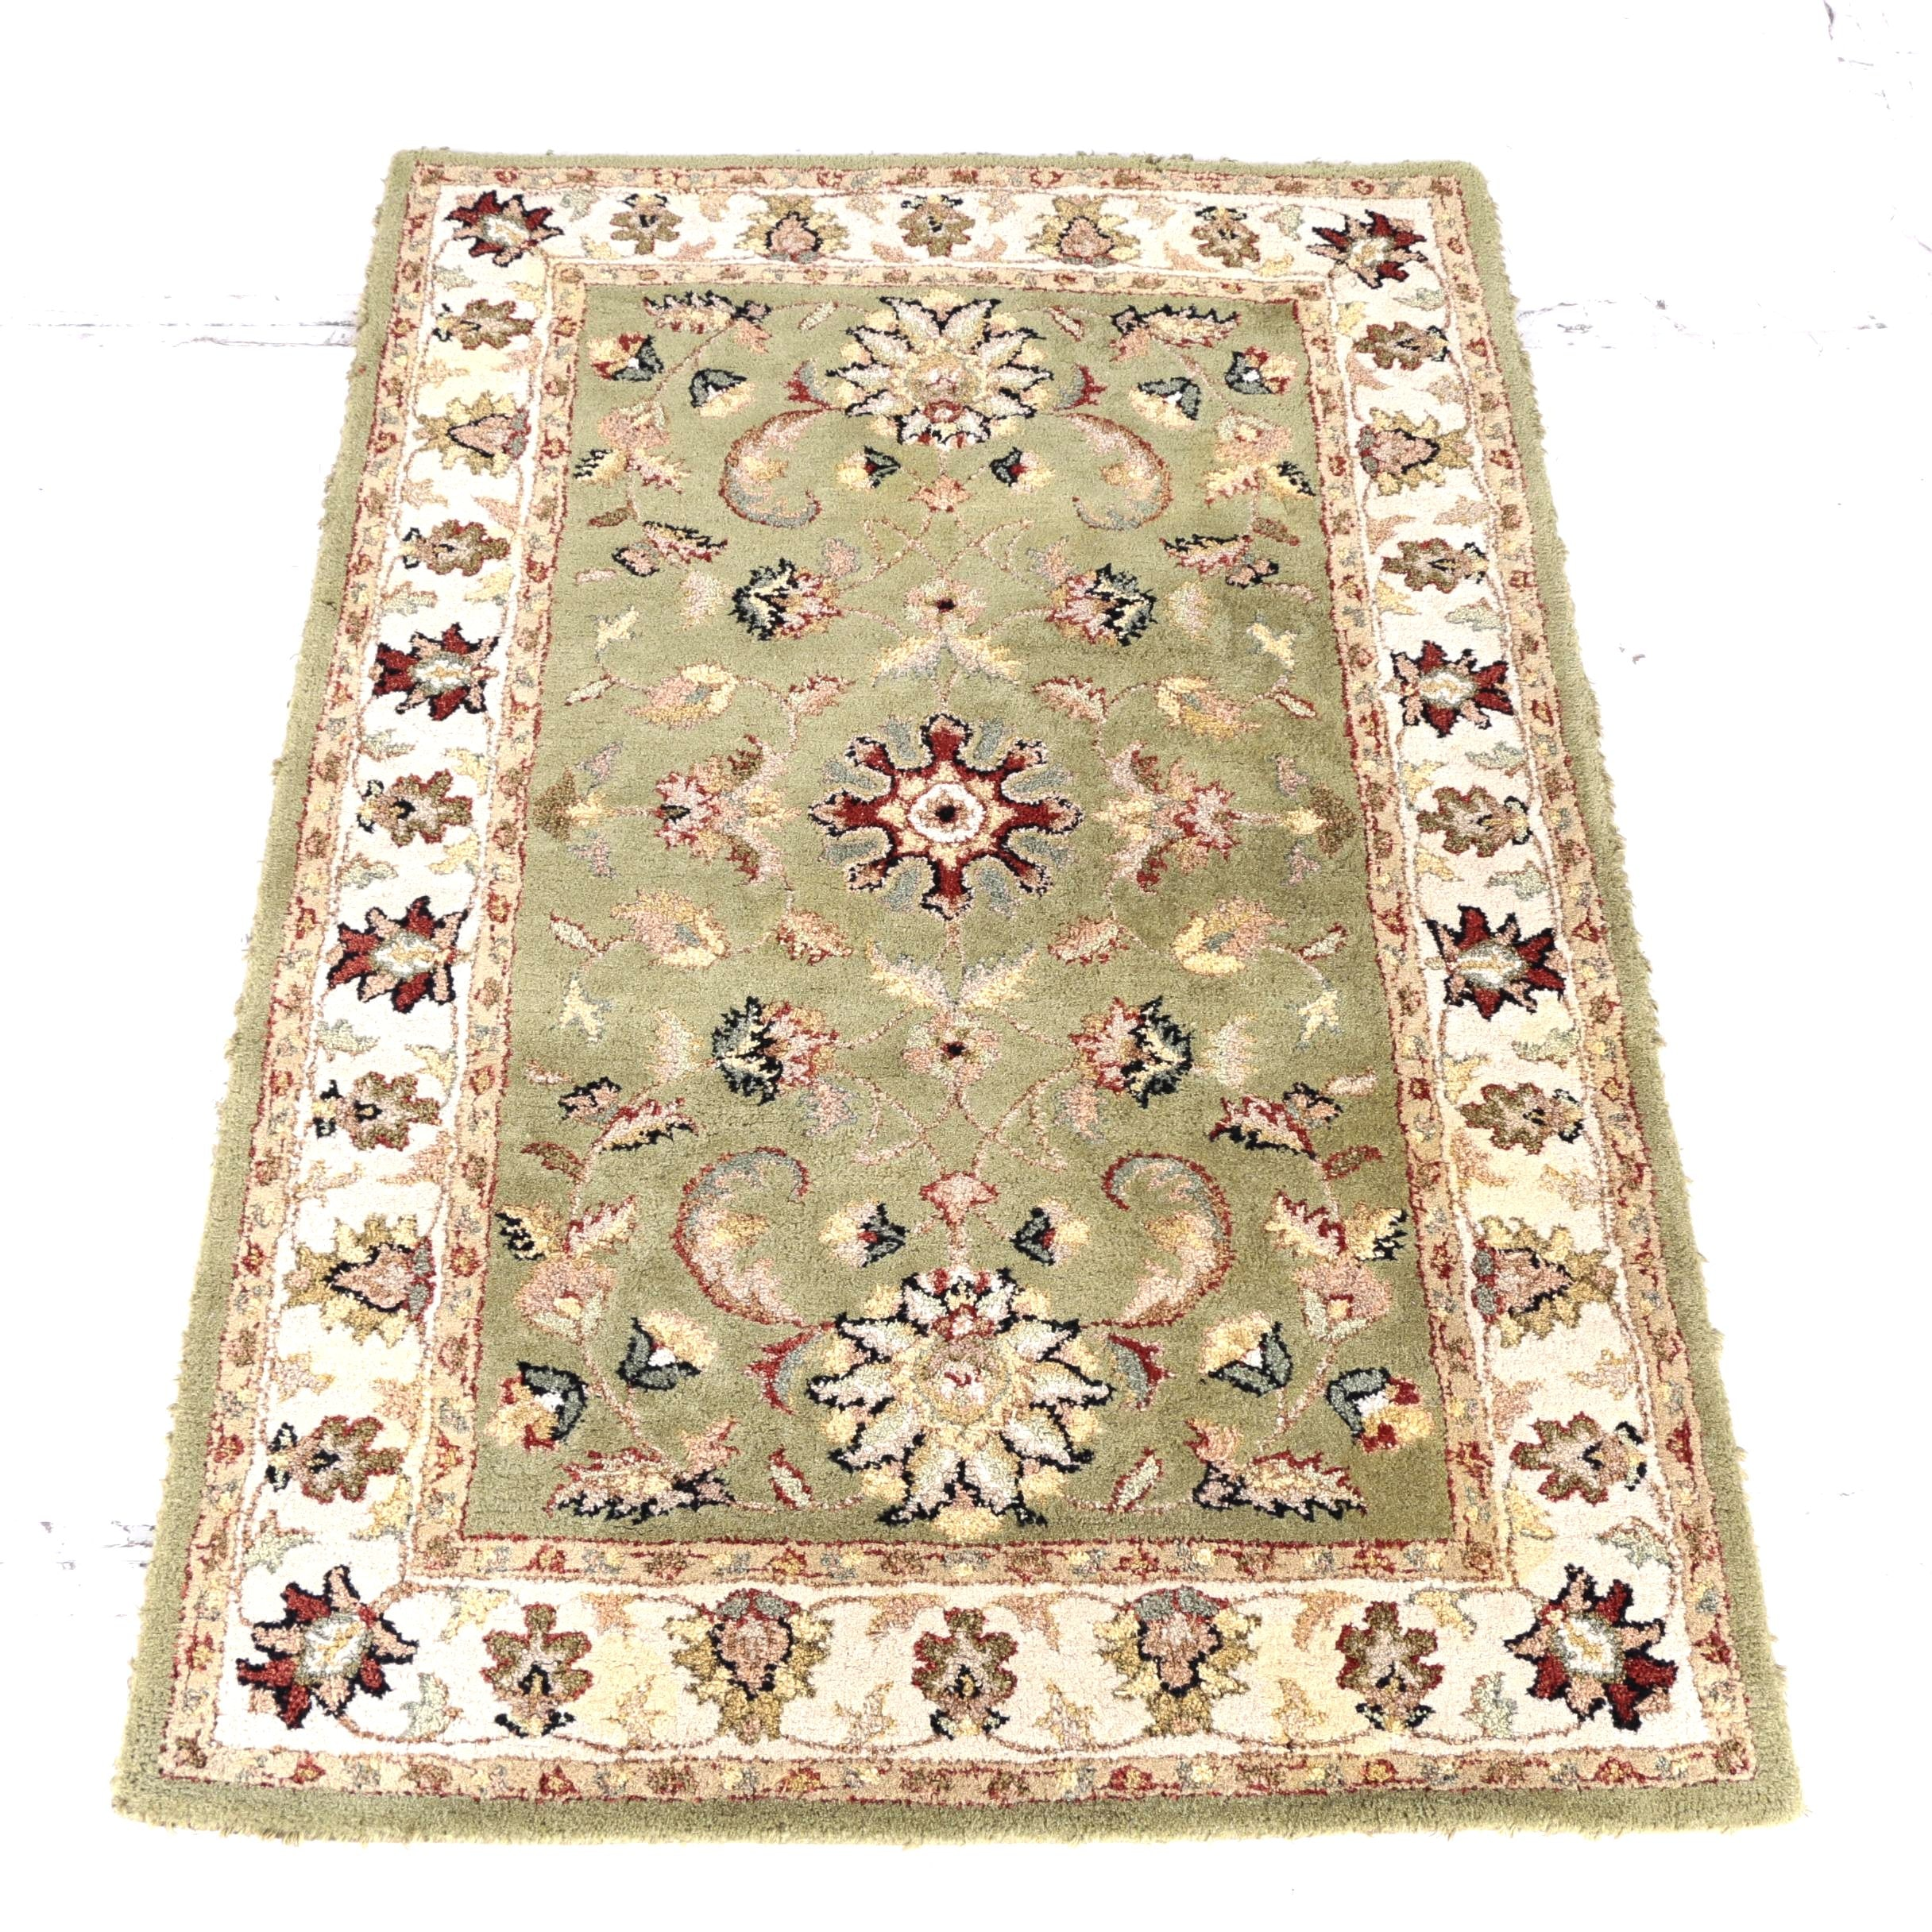 Feizy Tufted Persian-Style Area Rug